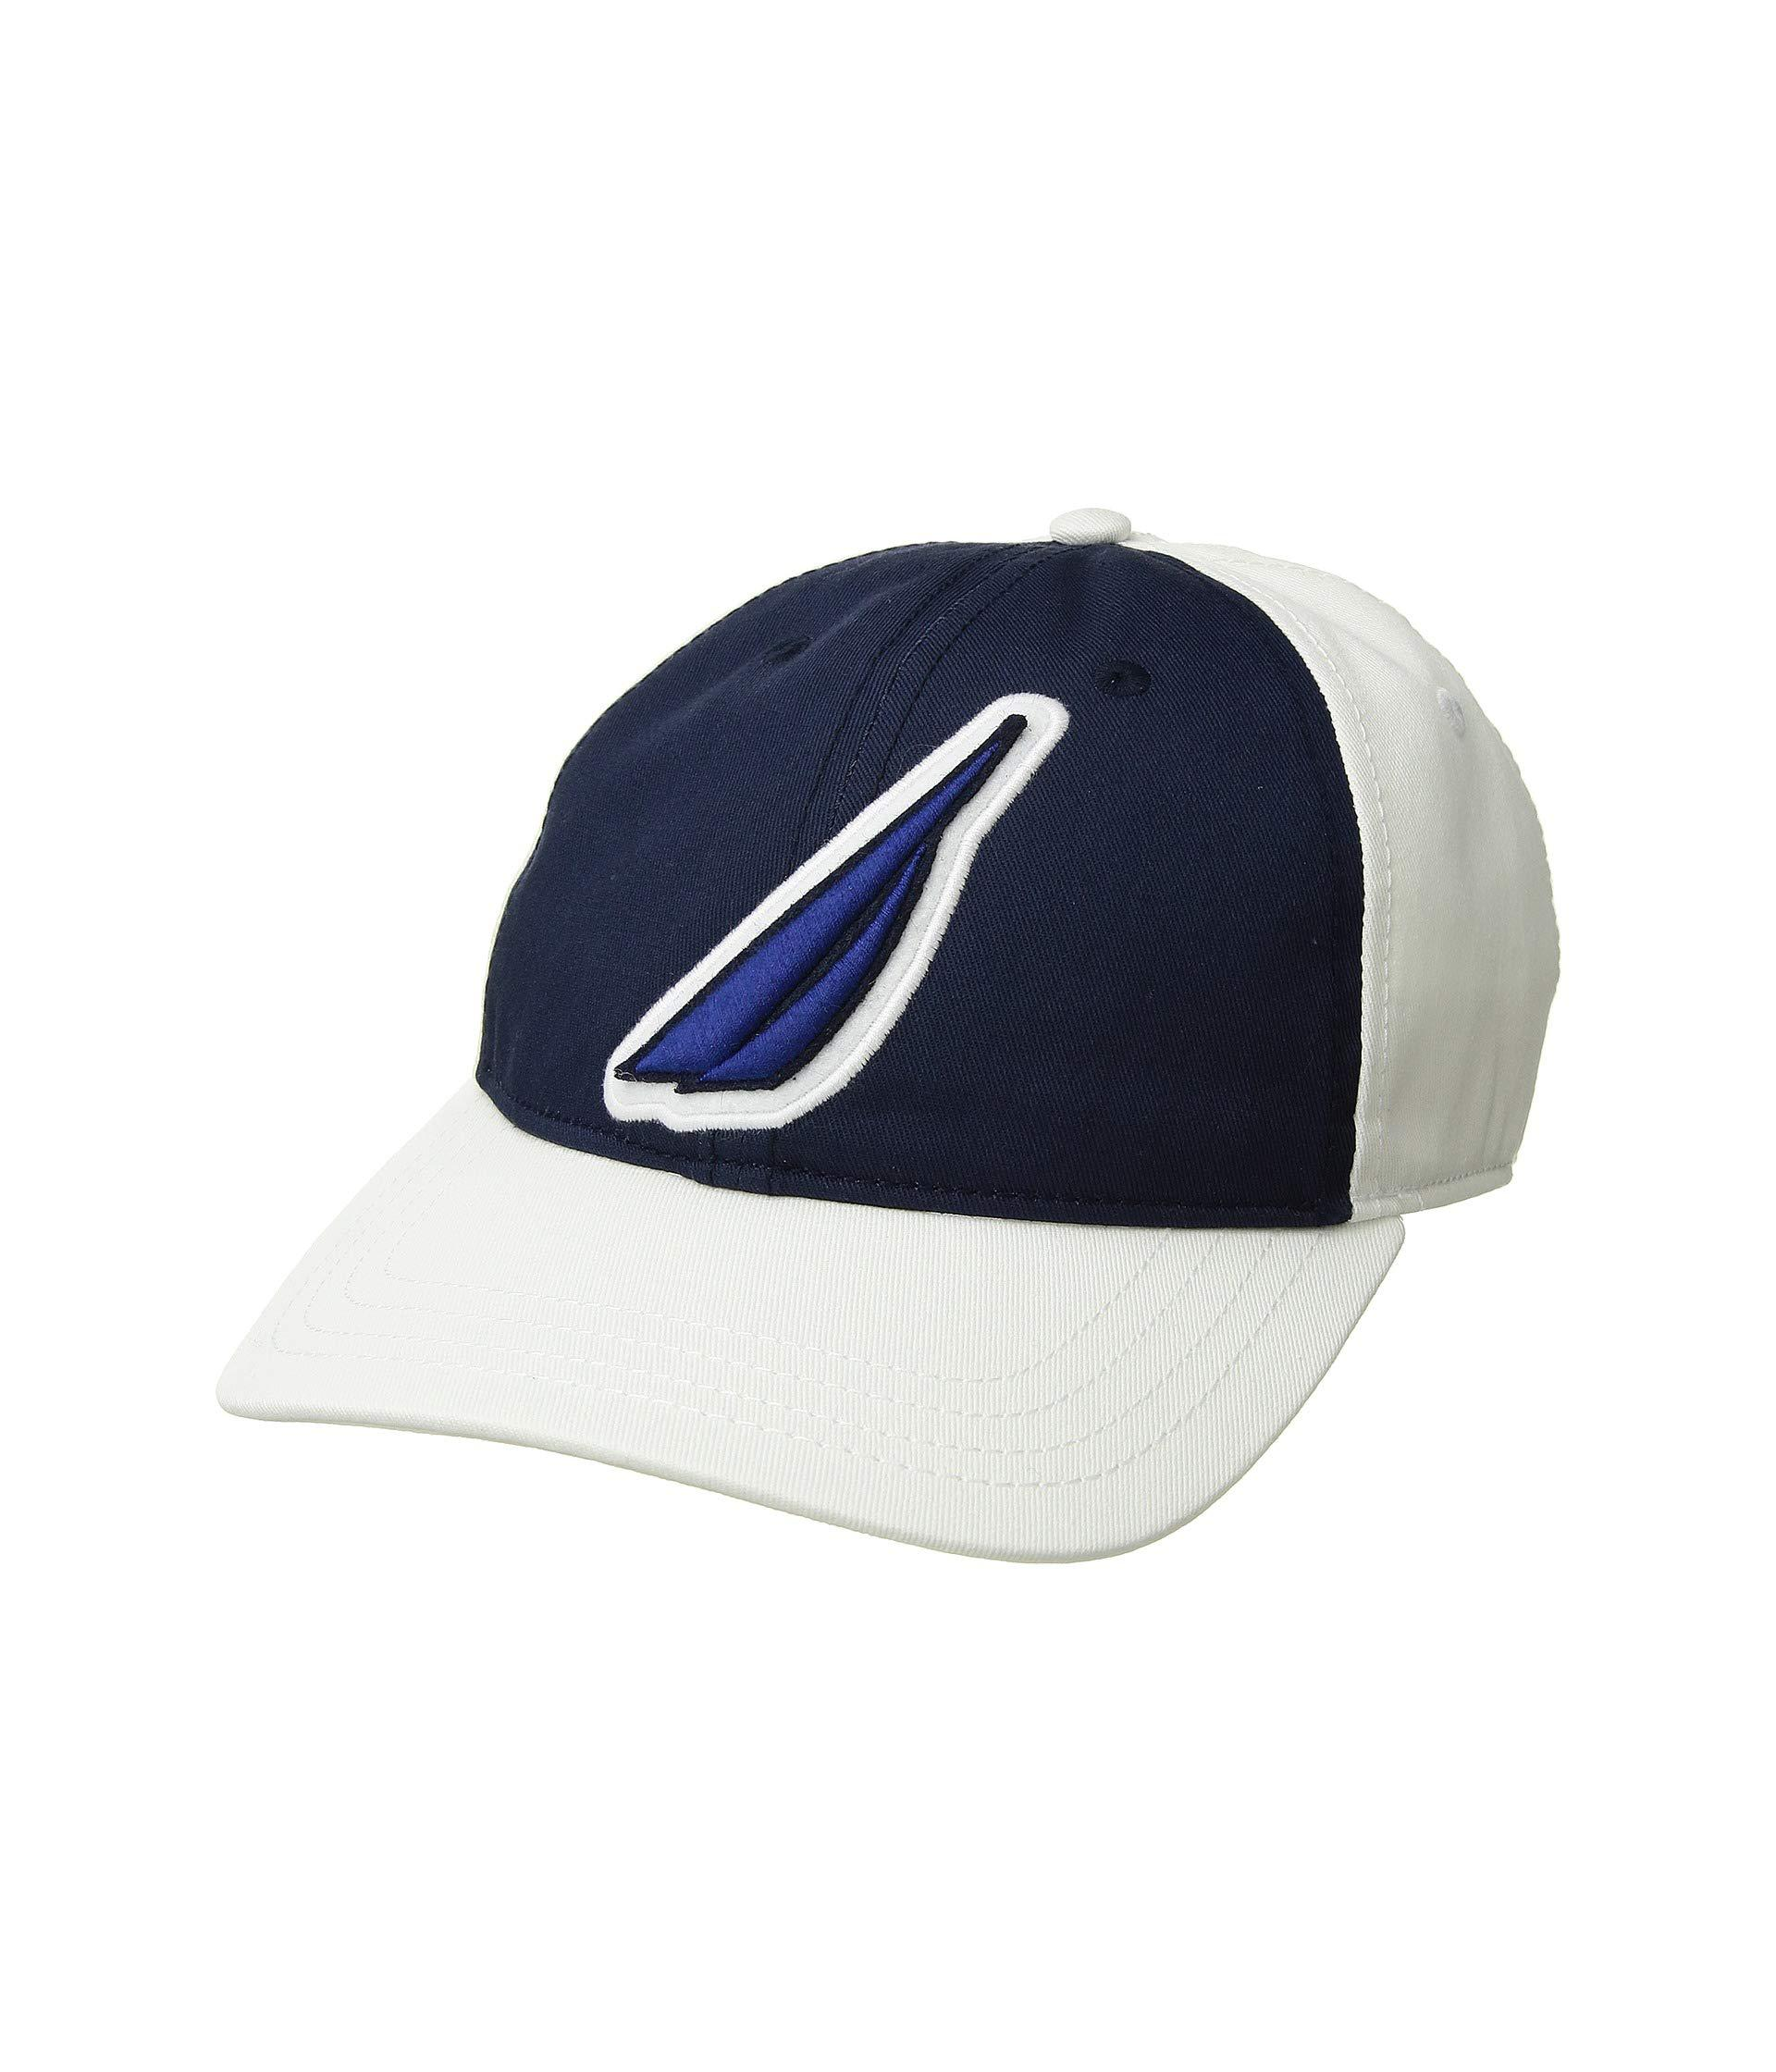 Lyst - Nautica Two-tone Dad Hat in Blue for Men - Save 10% 36a7ec93f3b